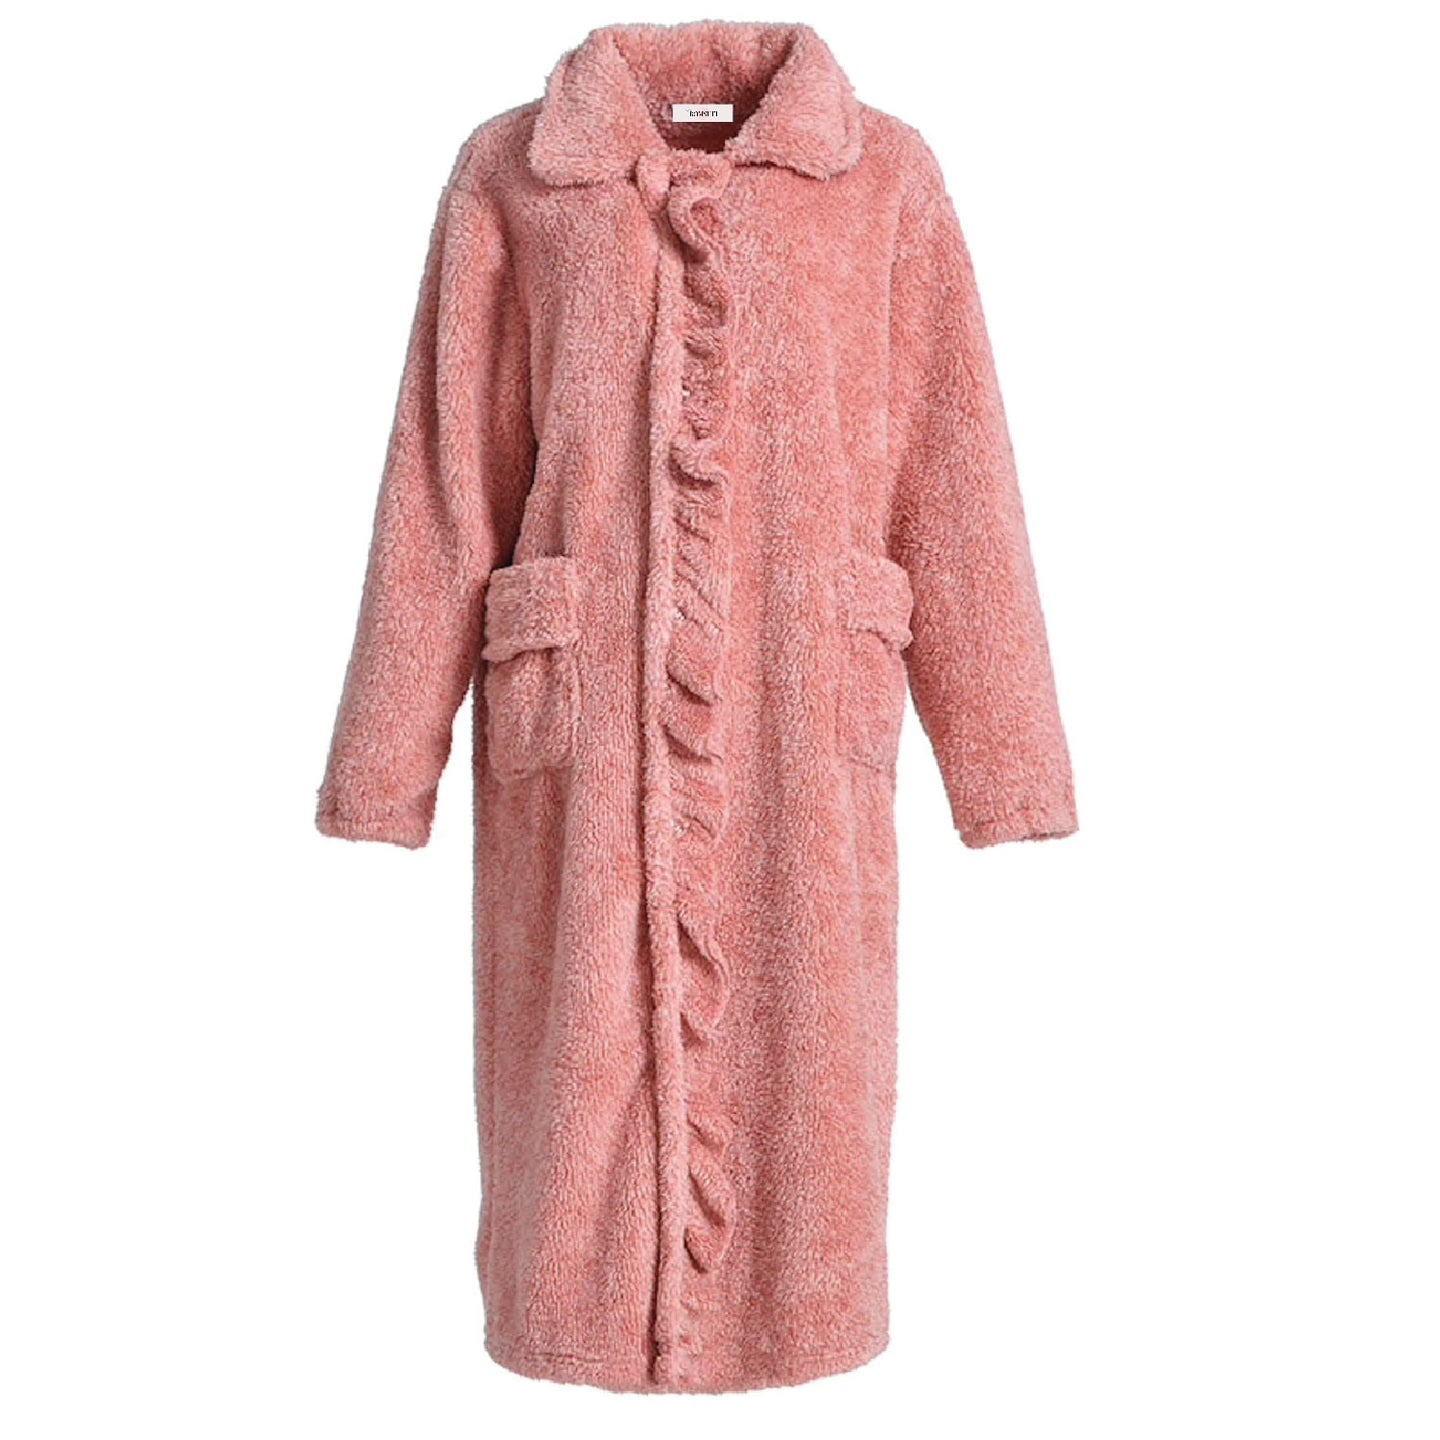 Strawberry Ruffle Robe